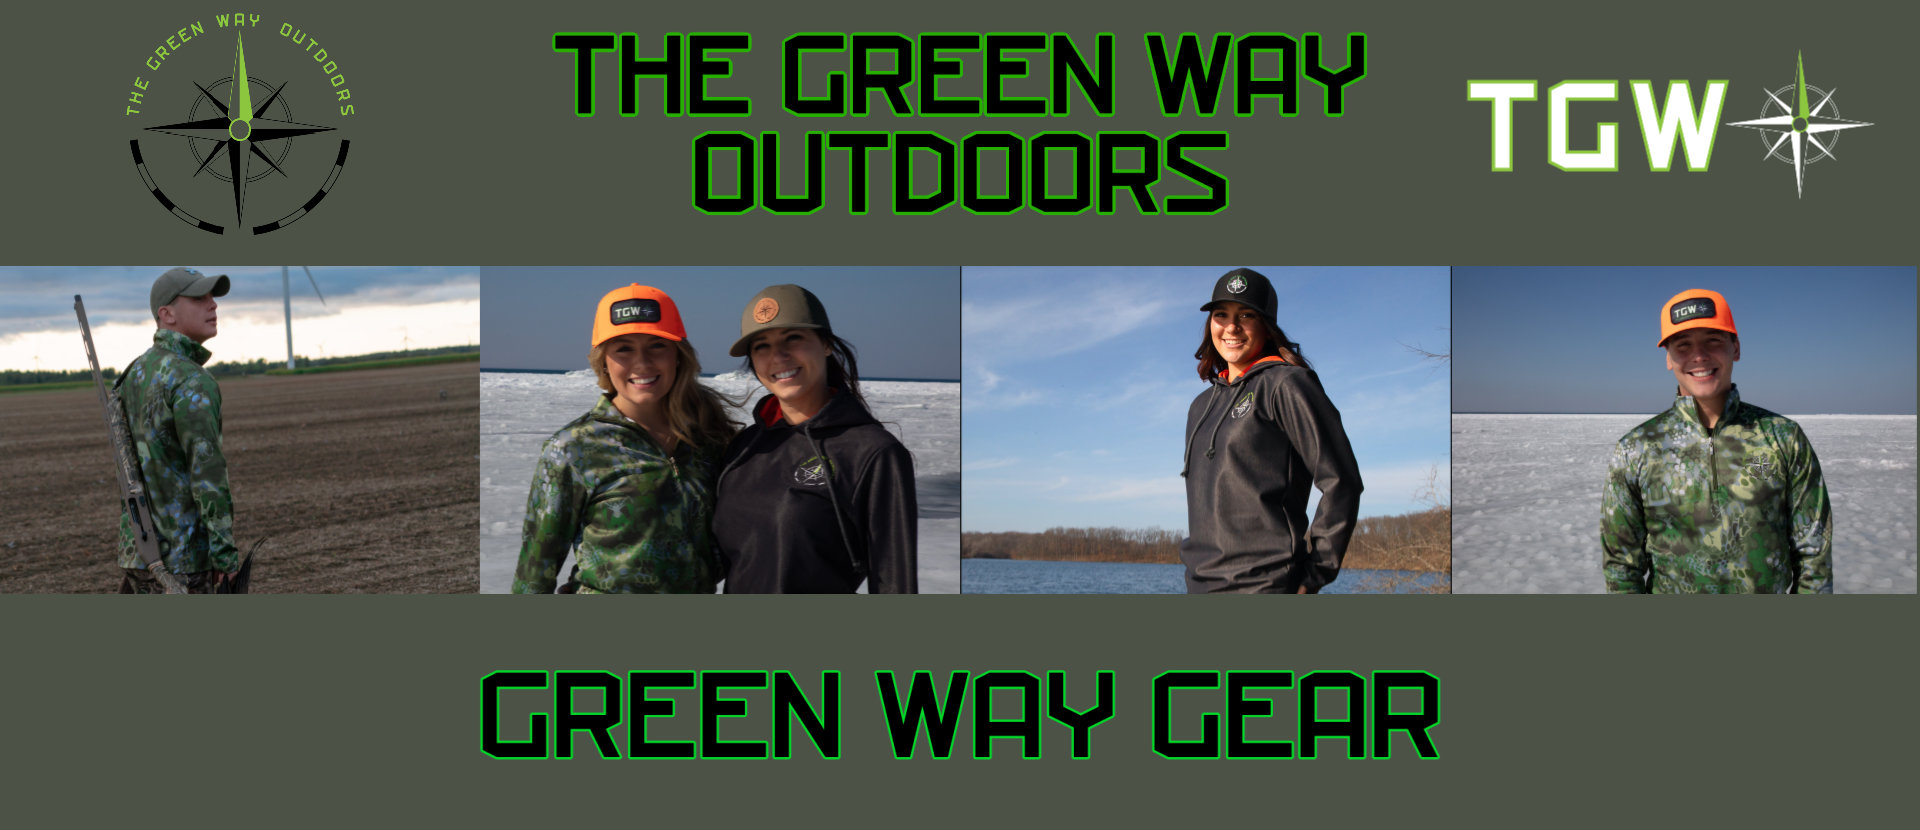 Greenway_outdoor_gear_store-1920x830